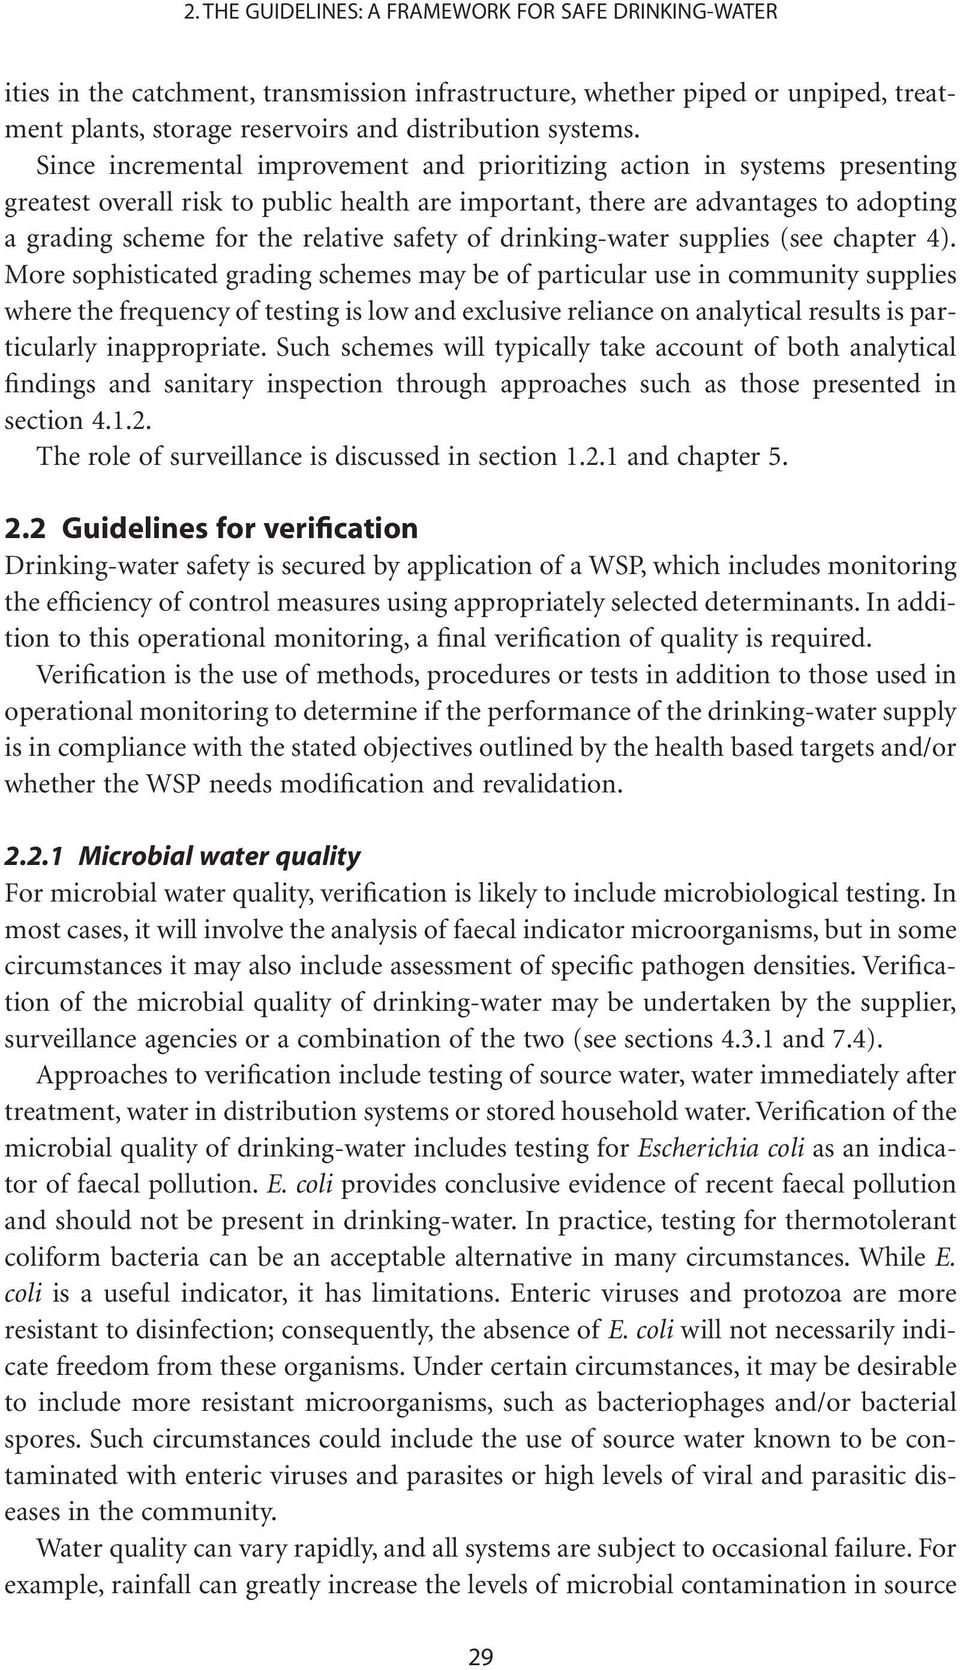 safety of drinking-water supplies (see chapter 4).